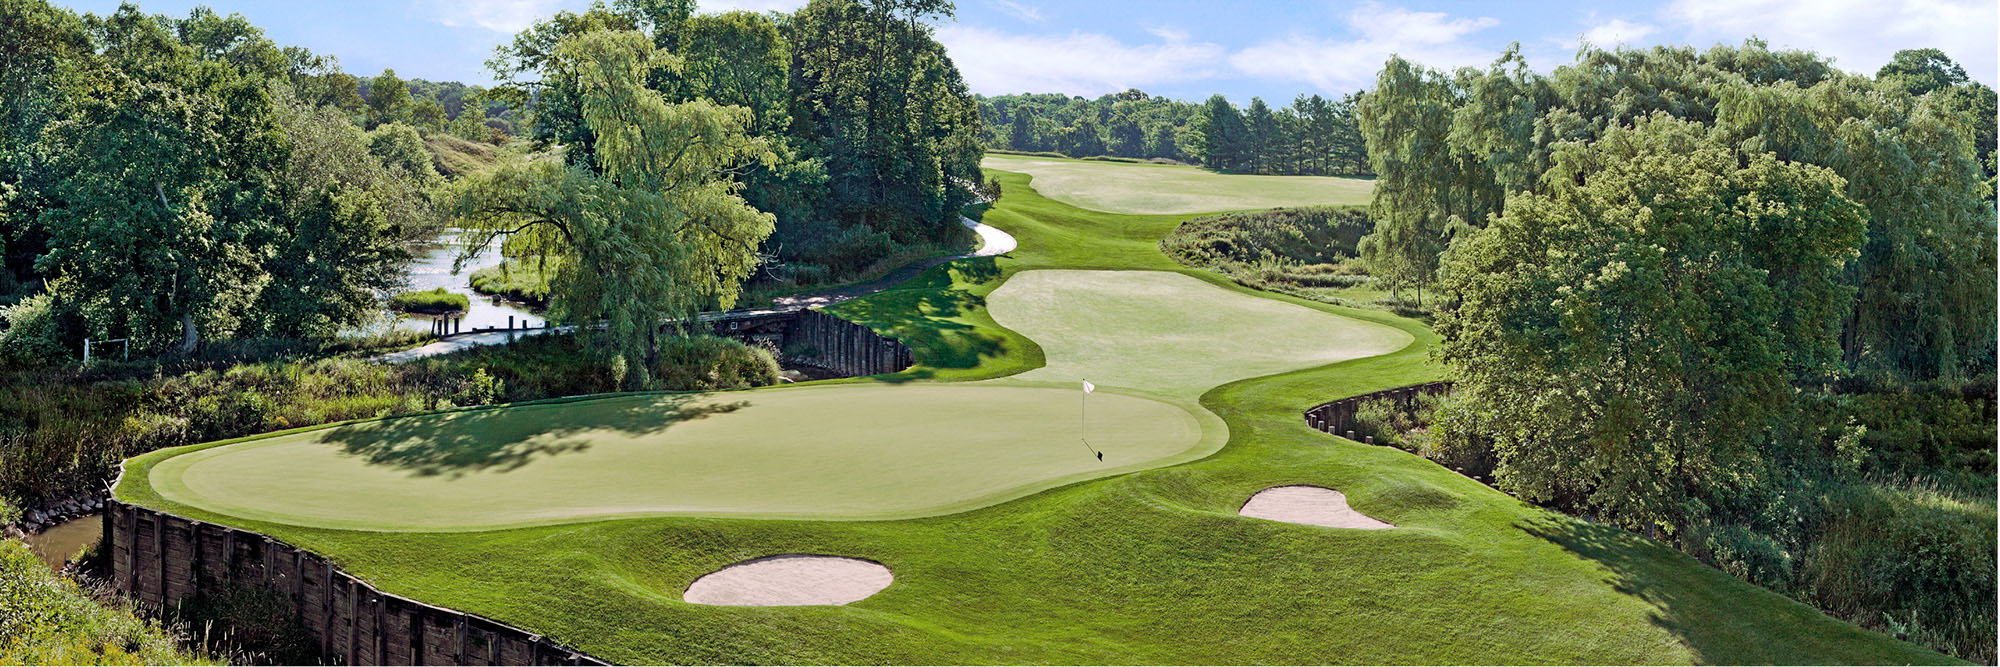 Golf Course Image - Blackwolf Run Meadow Valleys No. 14